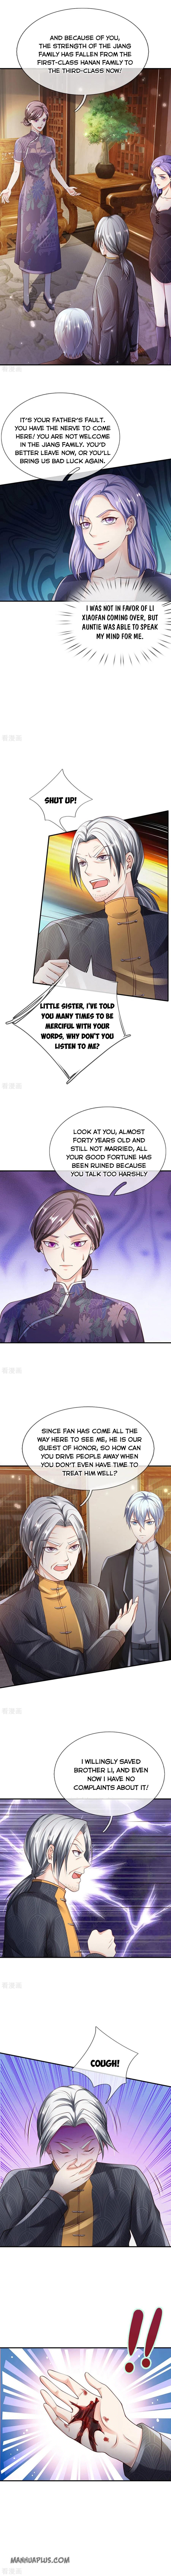 I'm The Great Immortal - chapter 242 - #2